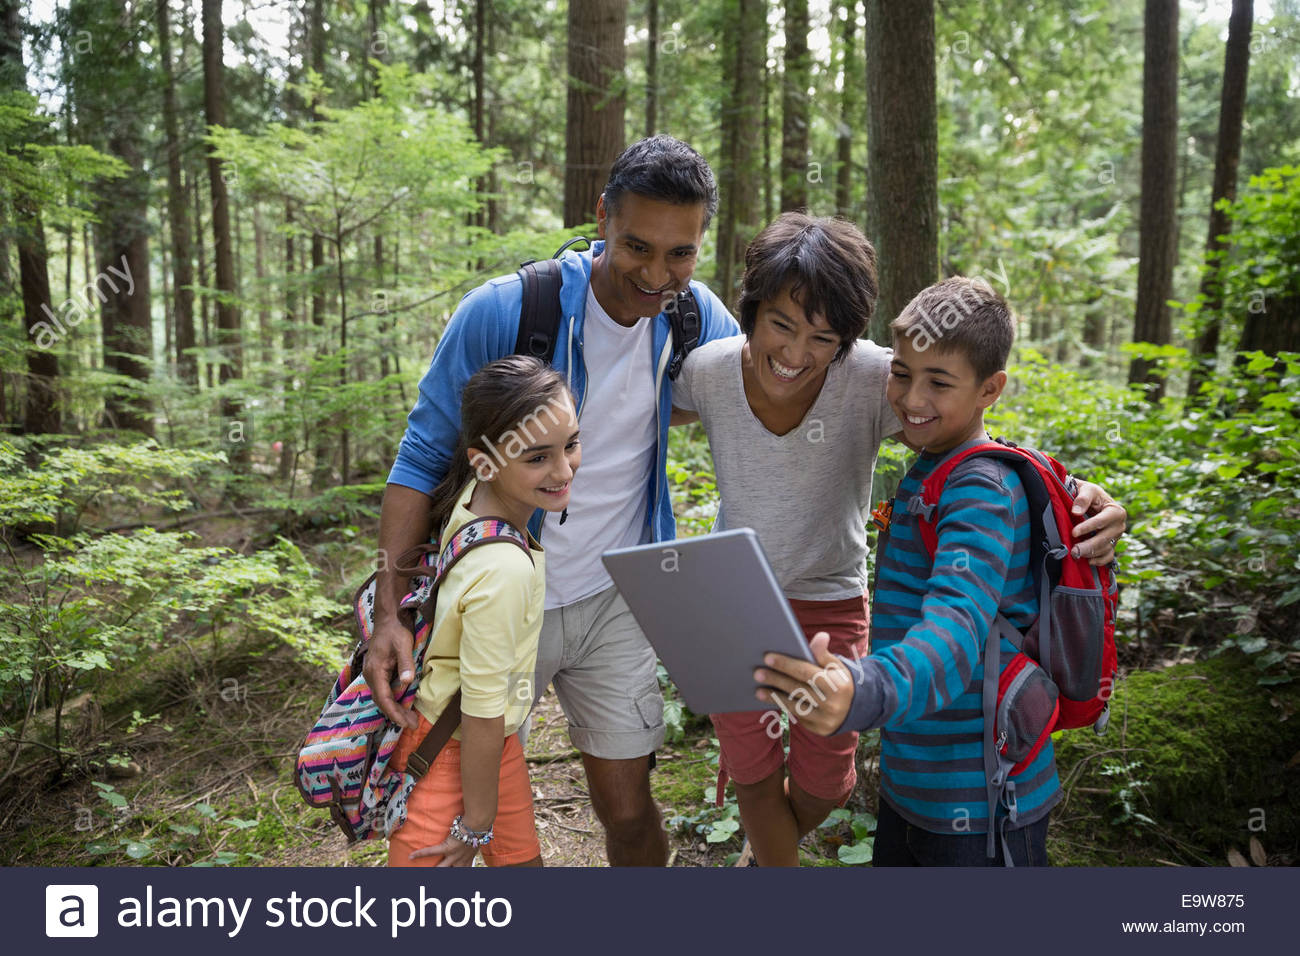 Family taking selfie with digital tablet in woods - Stock Image